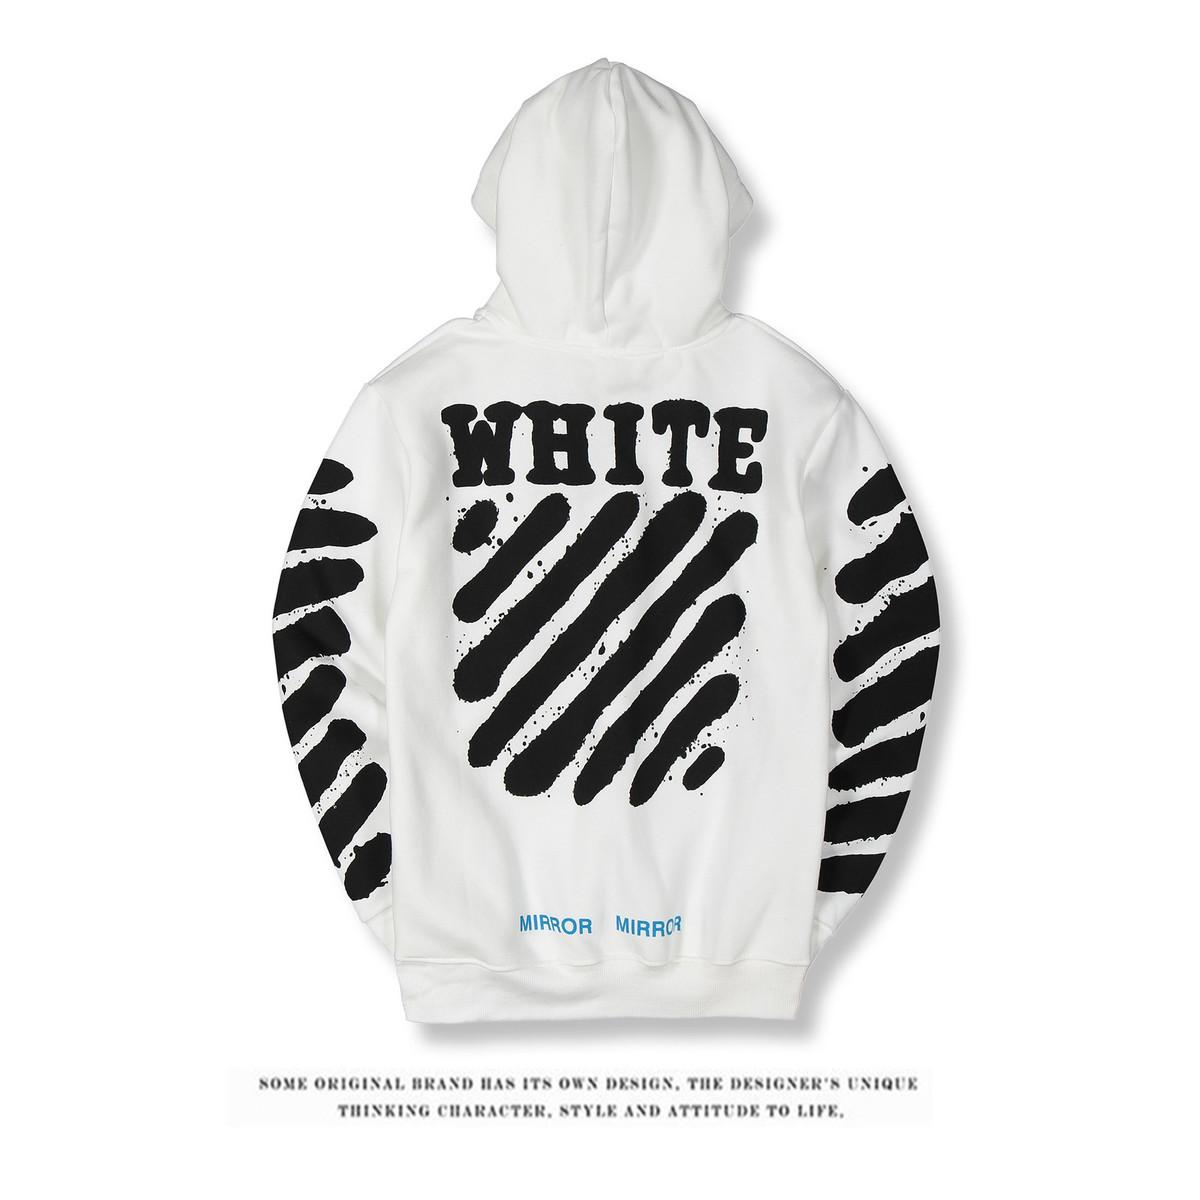 19ace936e708 2018 Hoodies Sweatshirts For Men 2018 Autumn And Winter Tiger Stripe Ink  Caps White Student Lovers Fashion Hat From Otaku88